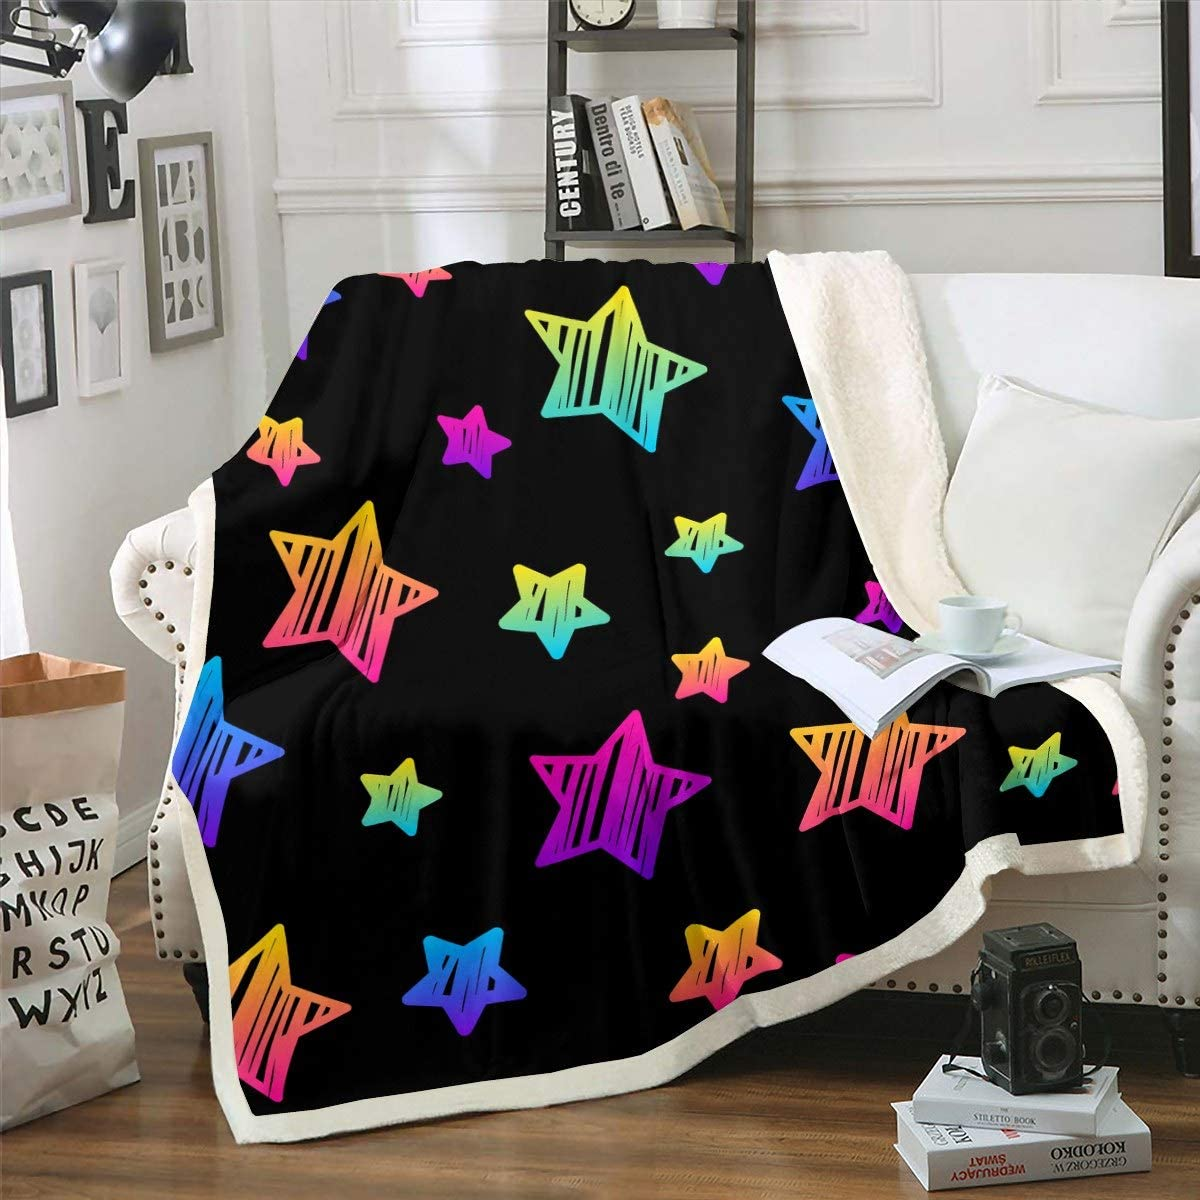 Feelyou Kids Stars Throw Blanket Colorful Print Tucson Mall Boys Girls Safety and trust